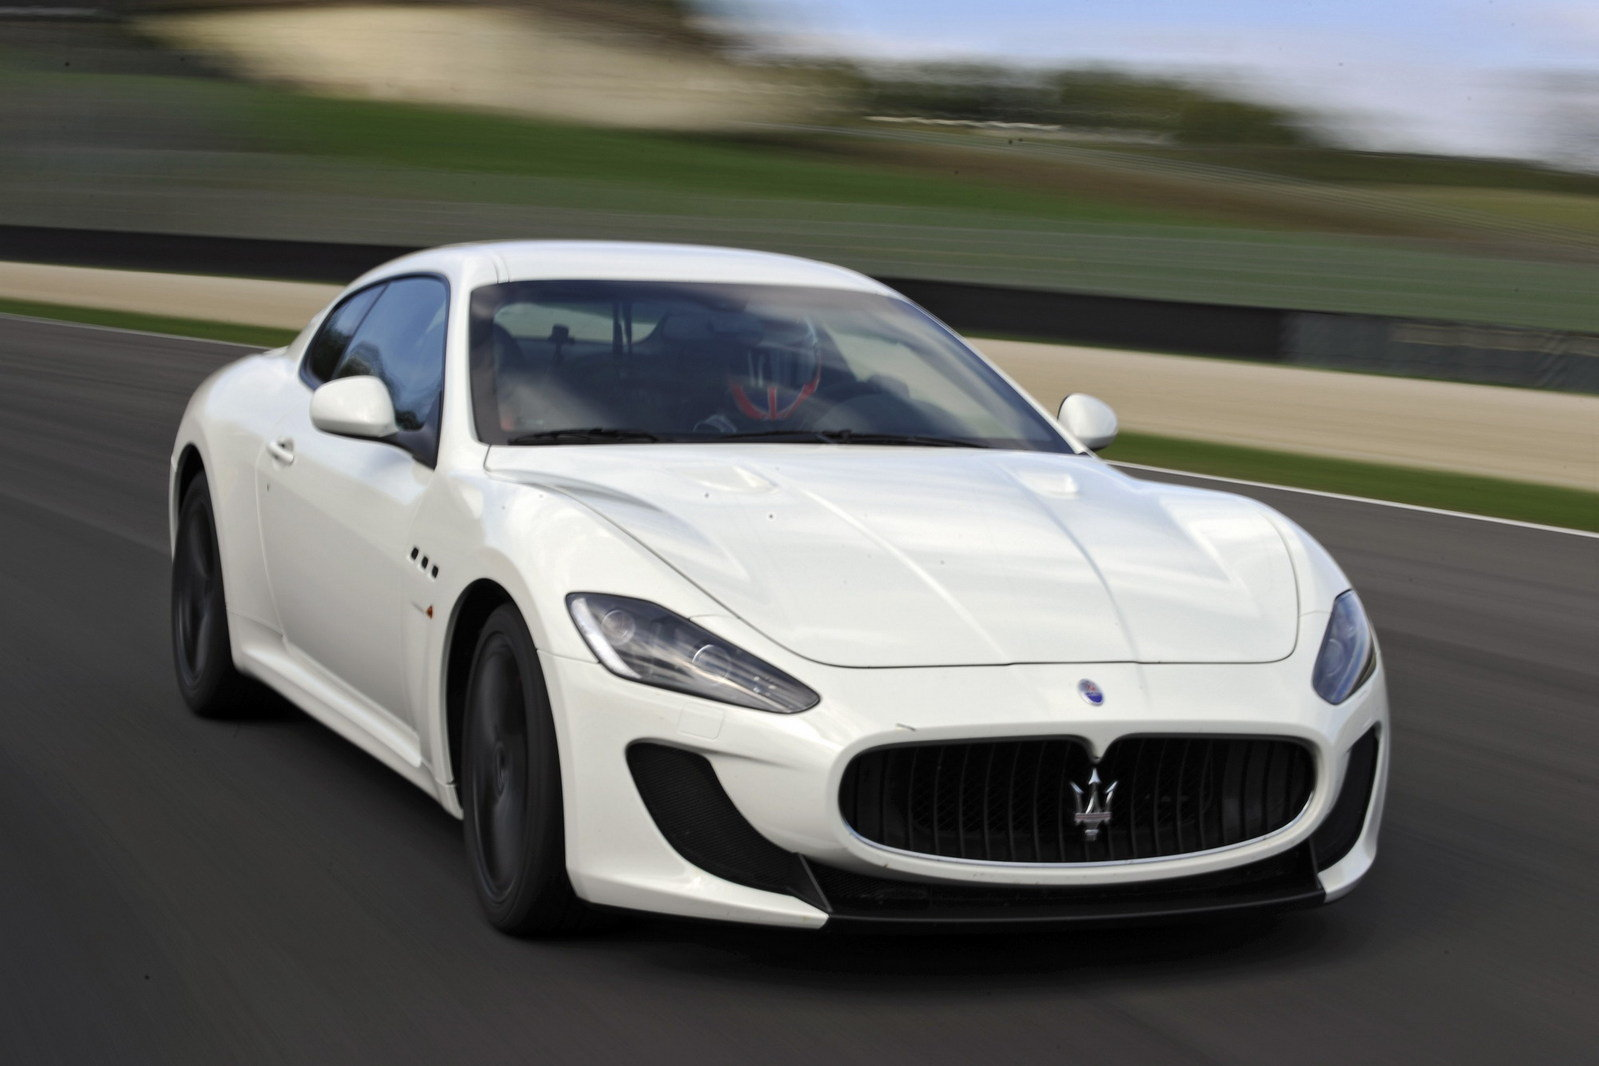 2011 maserati granturismo mc stradale picture 385246 car review top speed. Black Bedroom Furniture Sets. Home Design Ideas